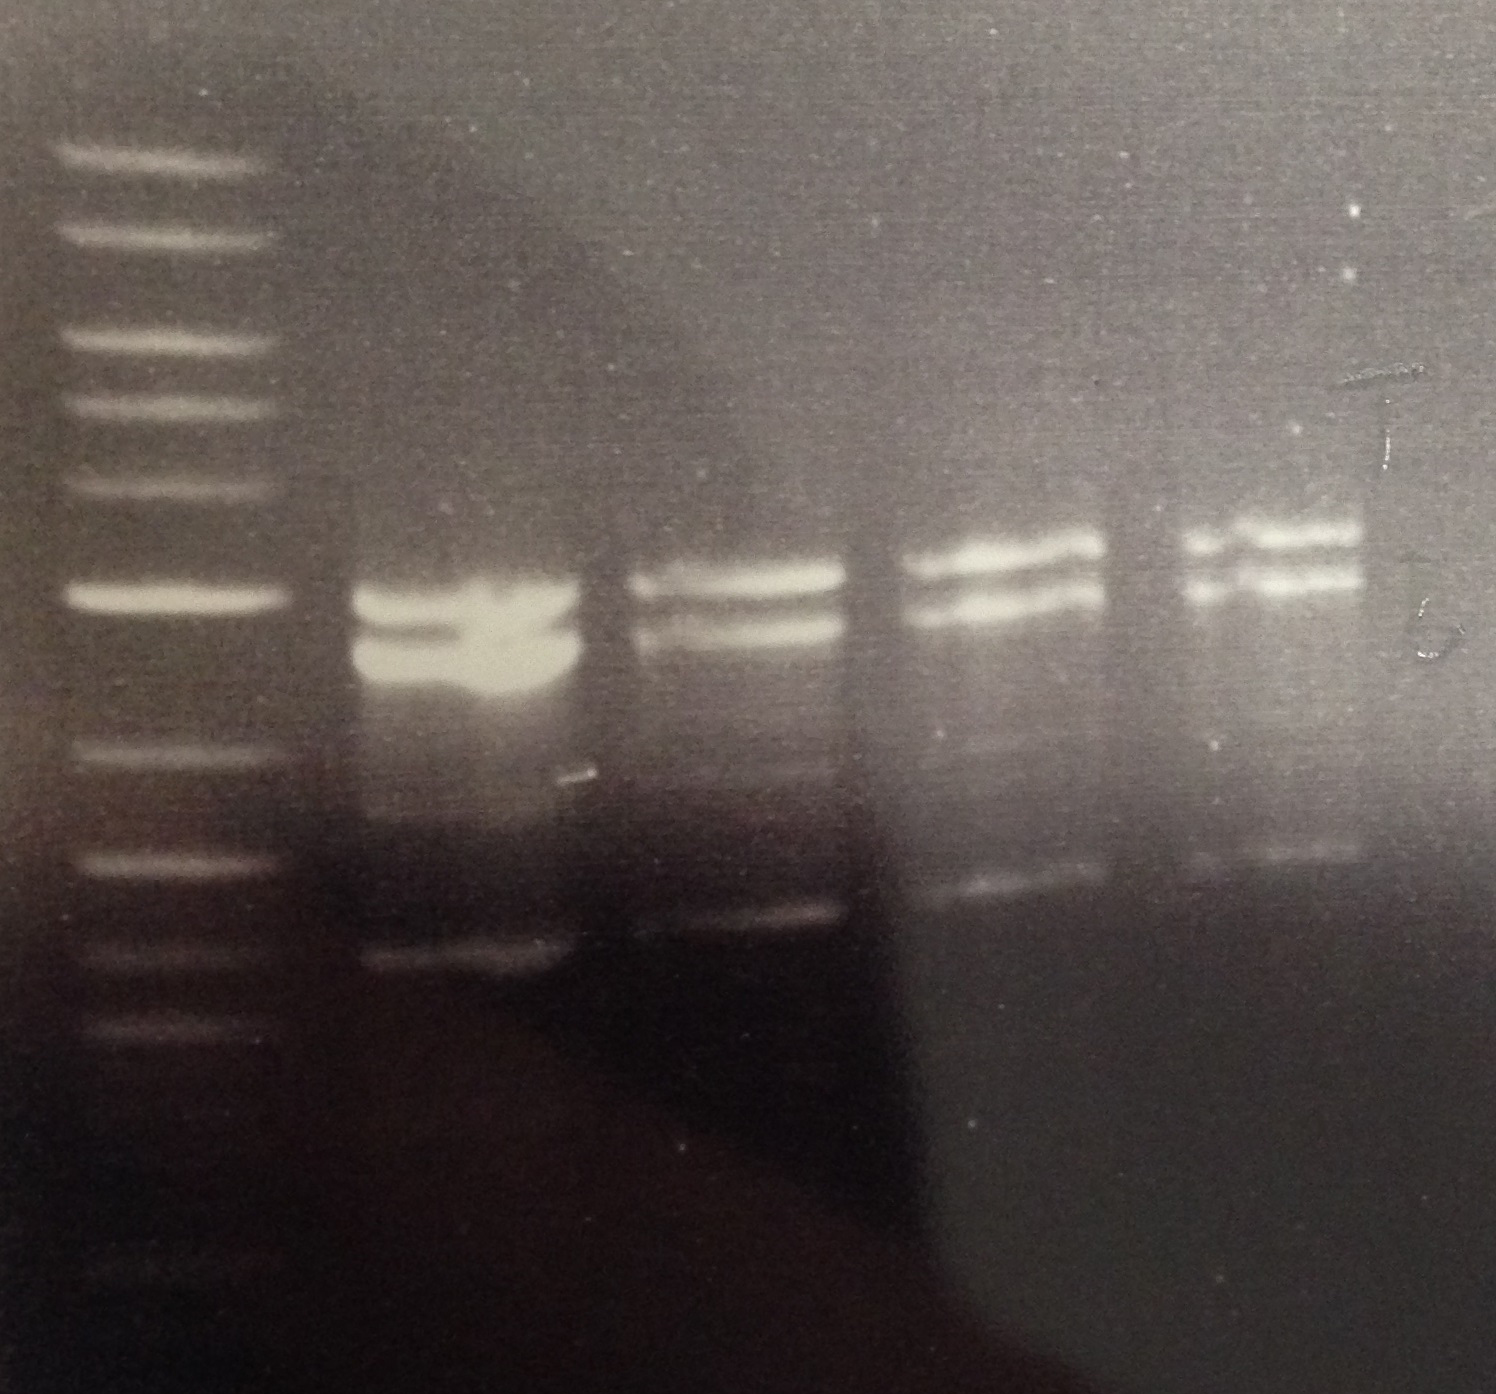 An example of a gel showing high molecular weight (>10 kb) bands corresponding to successfully extracted plant Genomic DNA (in this case, samples LNS1 and LNS2 from Arabidopsis DNA)